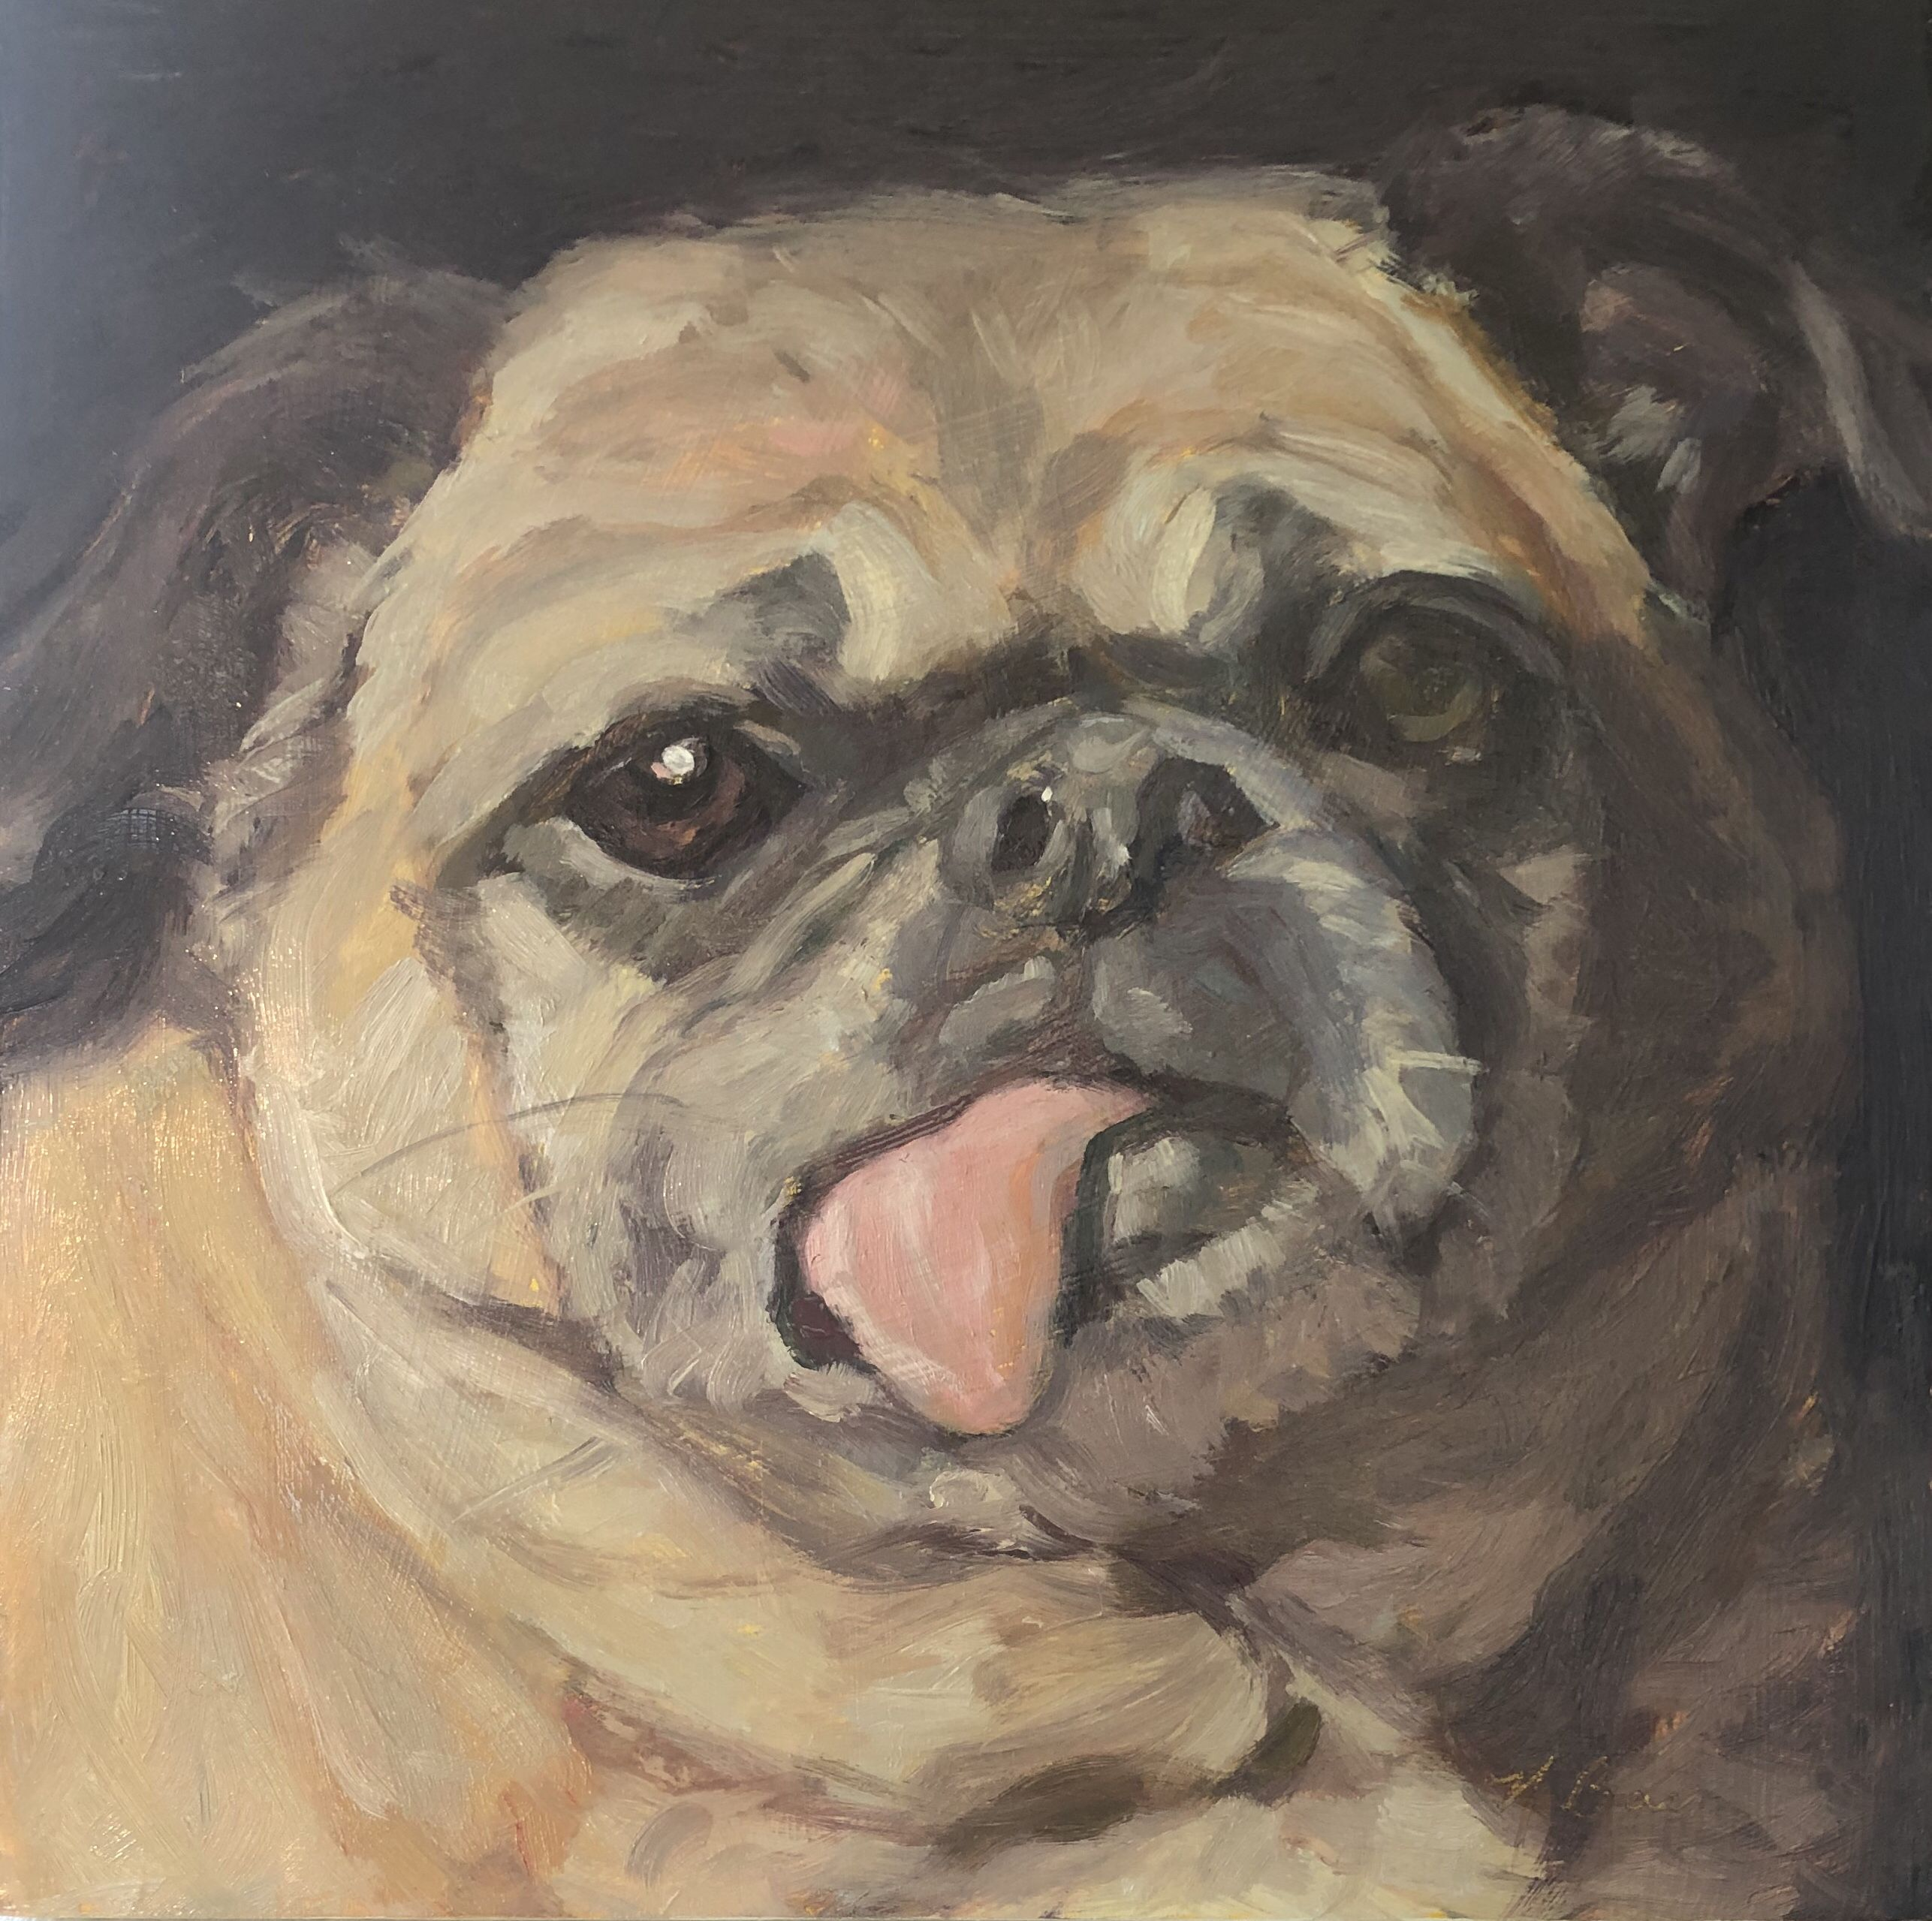 Commissioned Portrait In Oil Of A Pug With Personality This